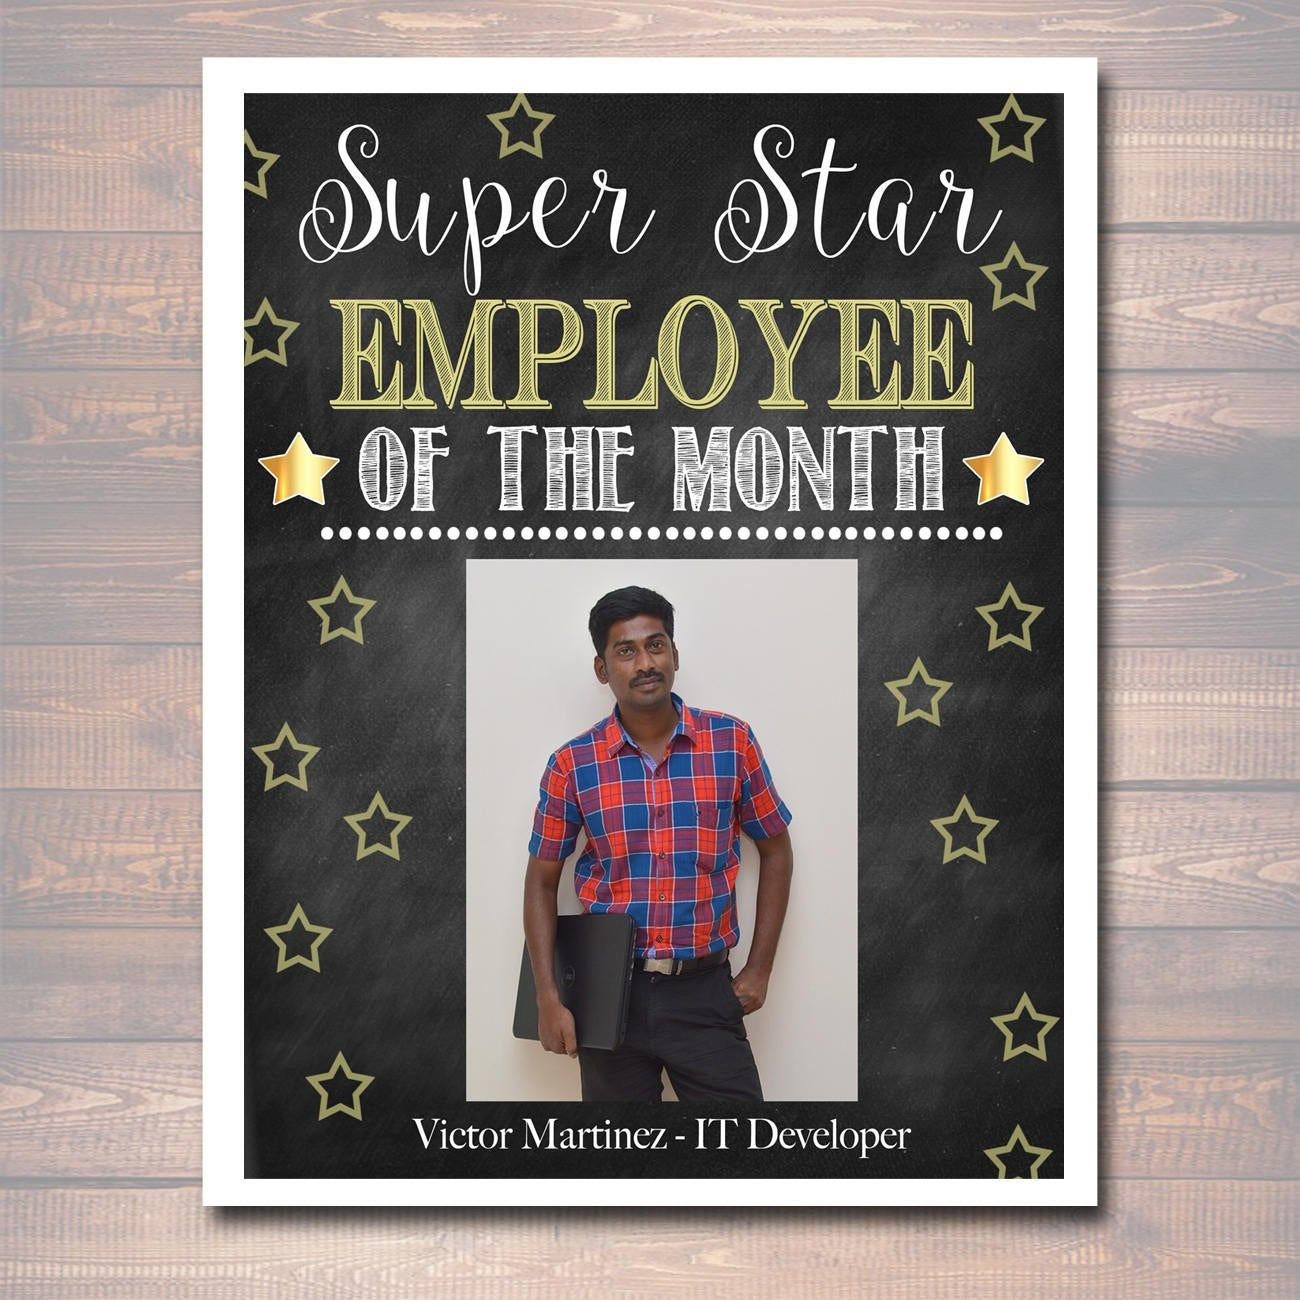 Editable Employee Of The Month Printable Office Printable Etsy Employee Recognition Board Employee Recognition Employee Appreciation Board Employee of the month photo